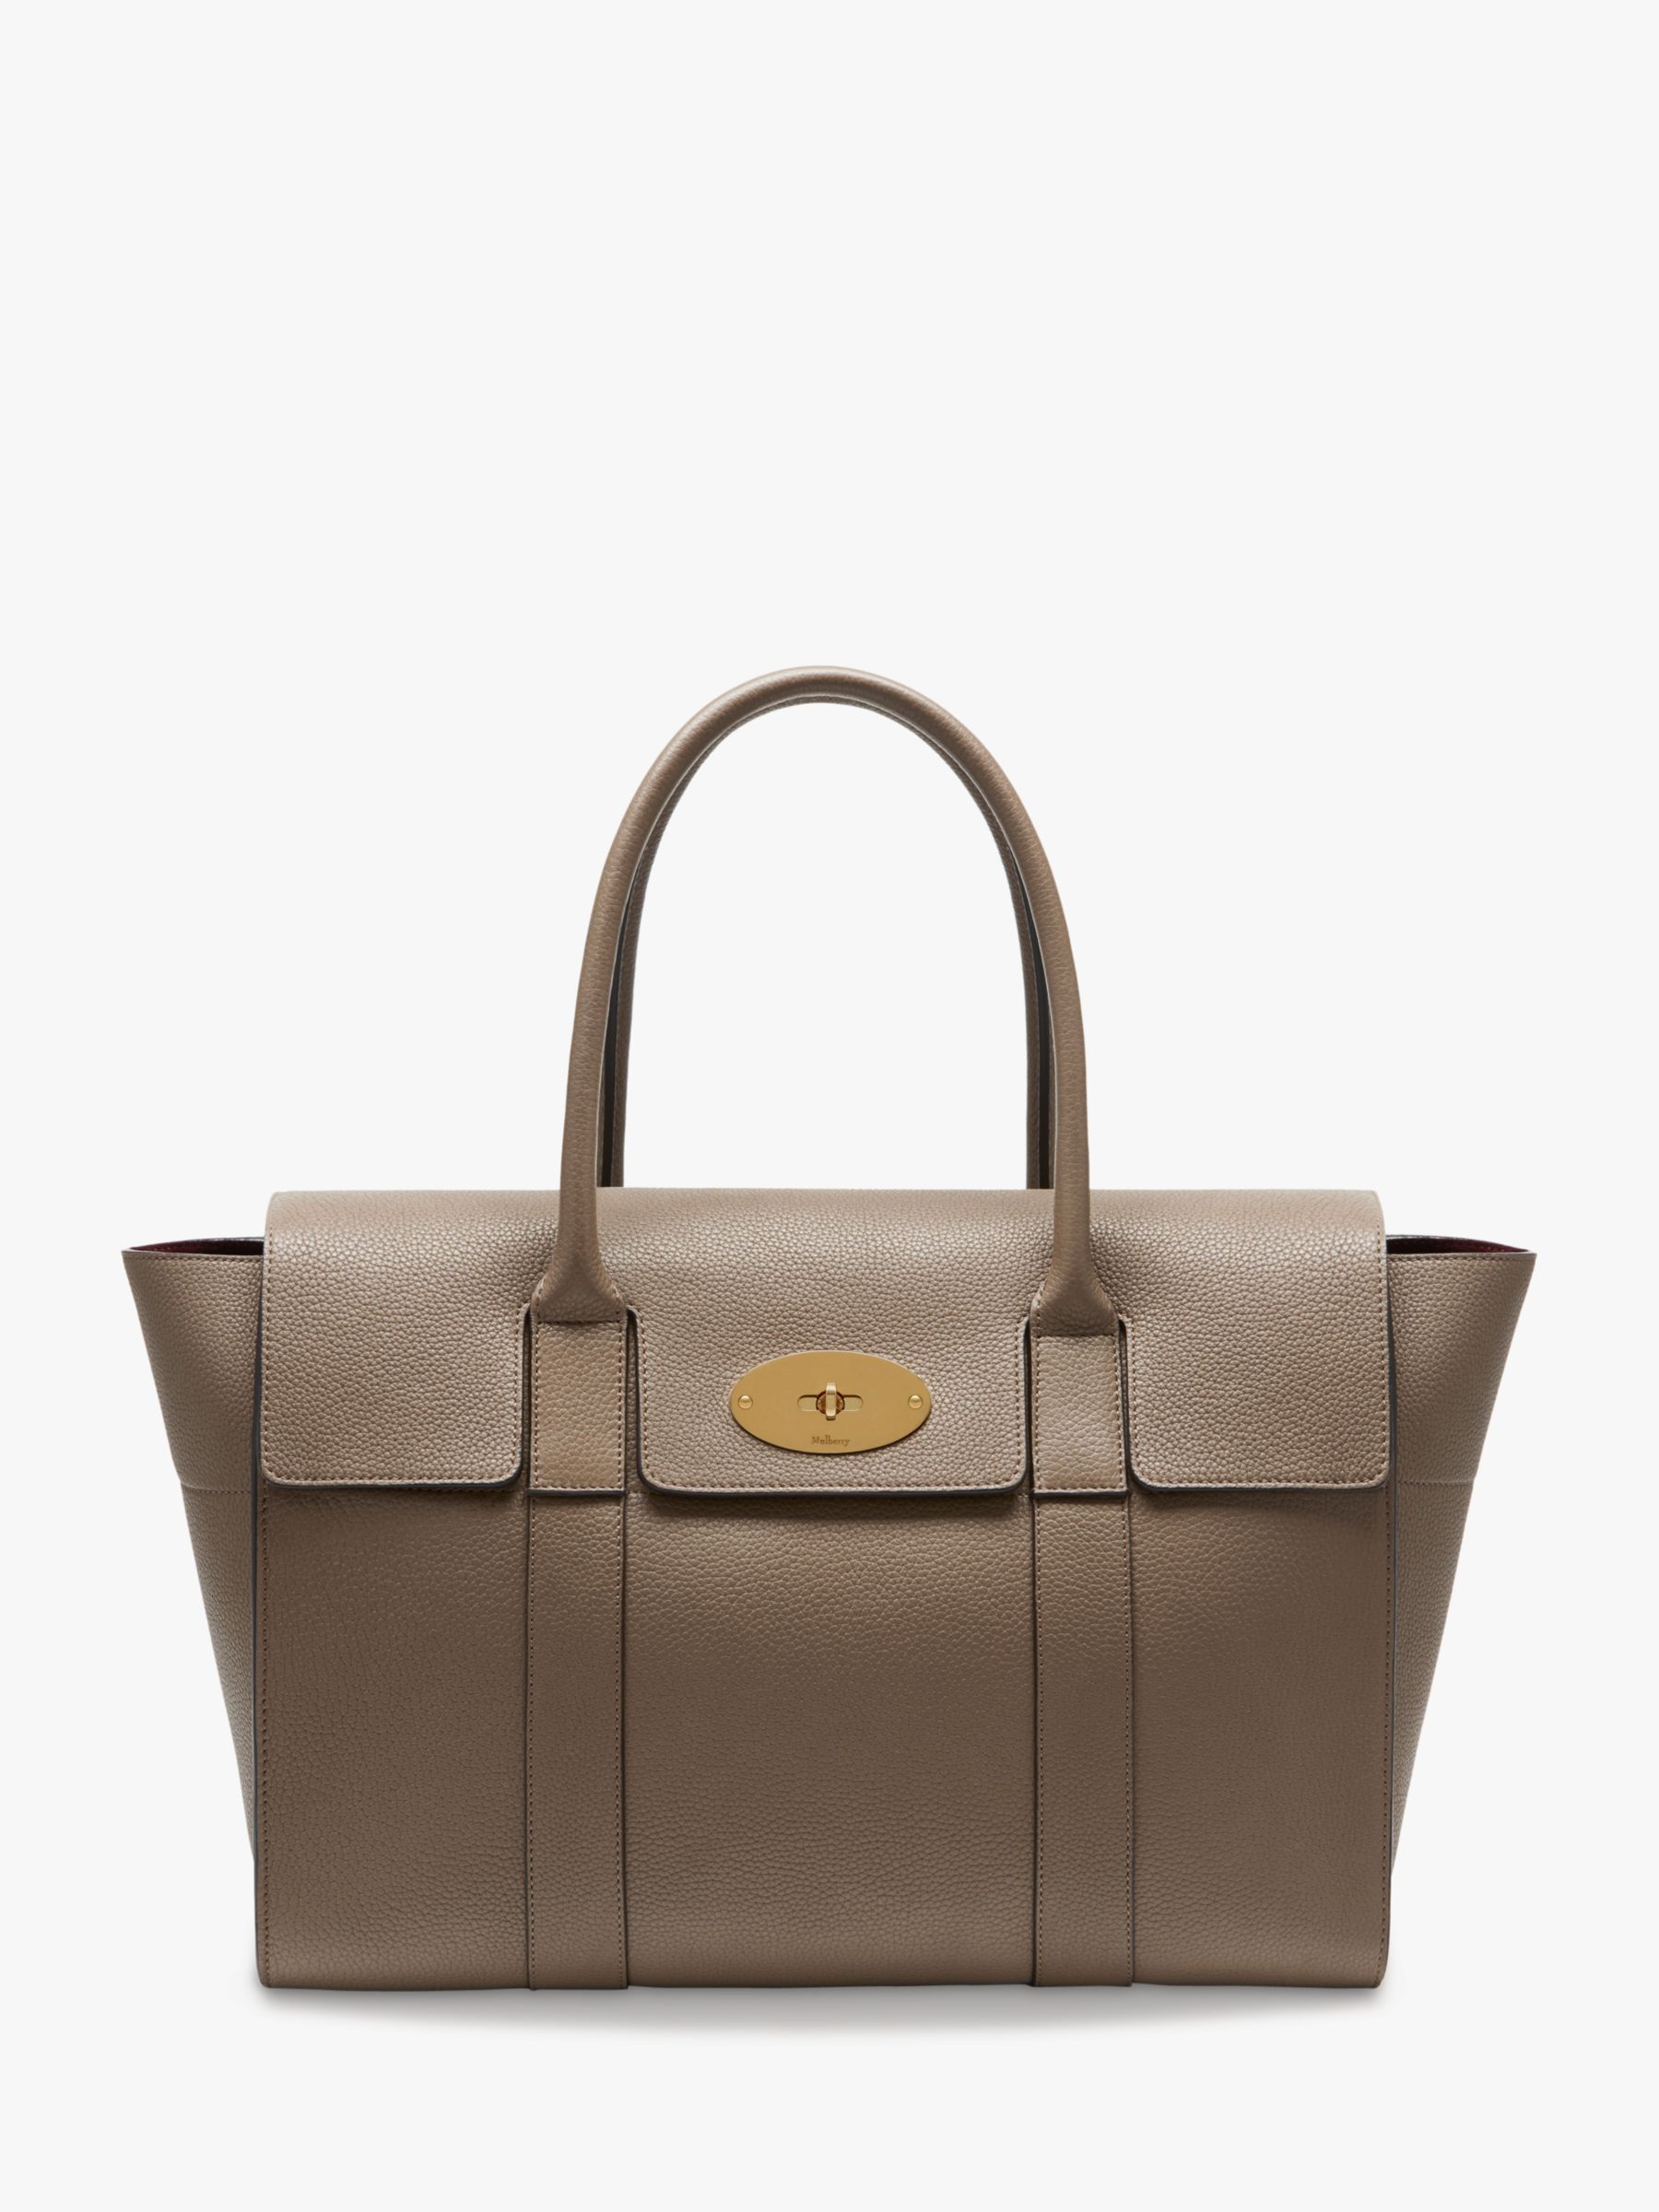 65c360d99d Mulberry Bayswater New Small Classic Grain Leather Handbag at John Lewis &  Partners